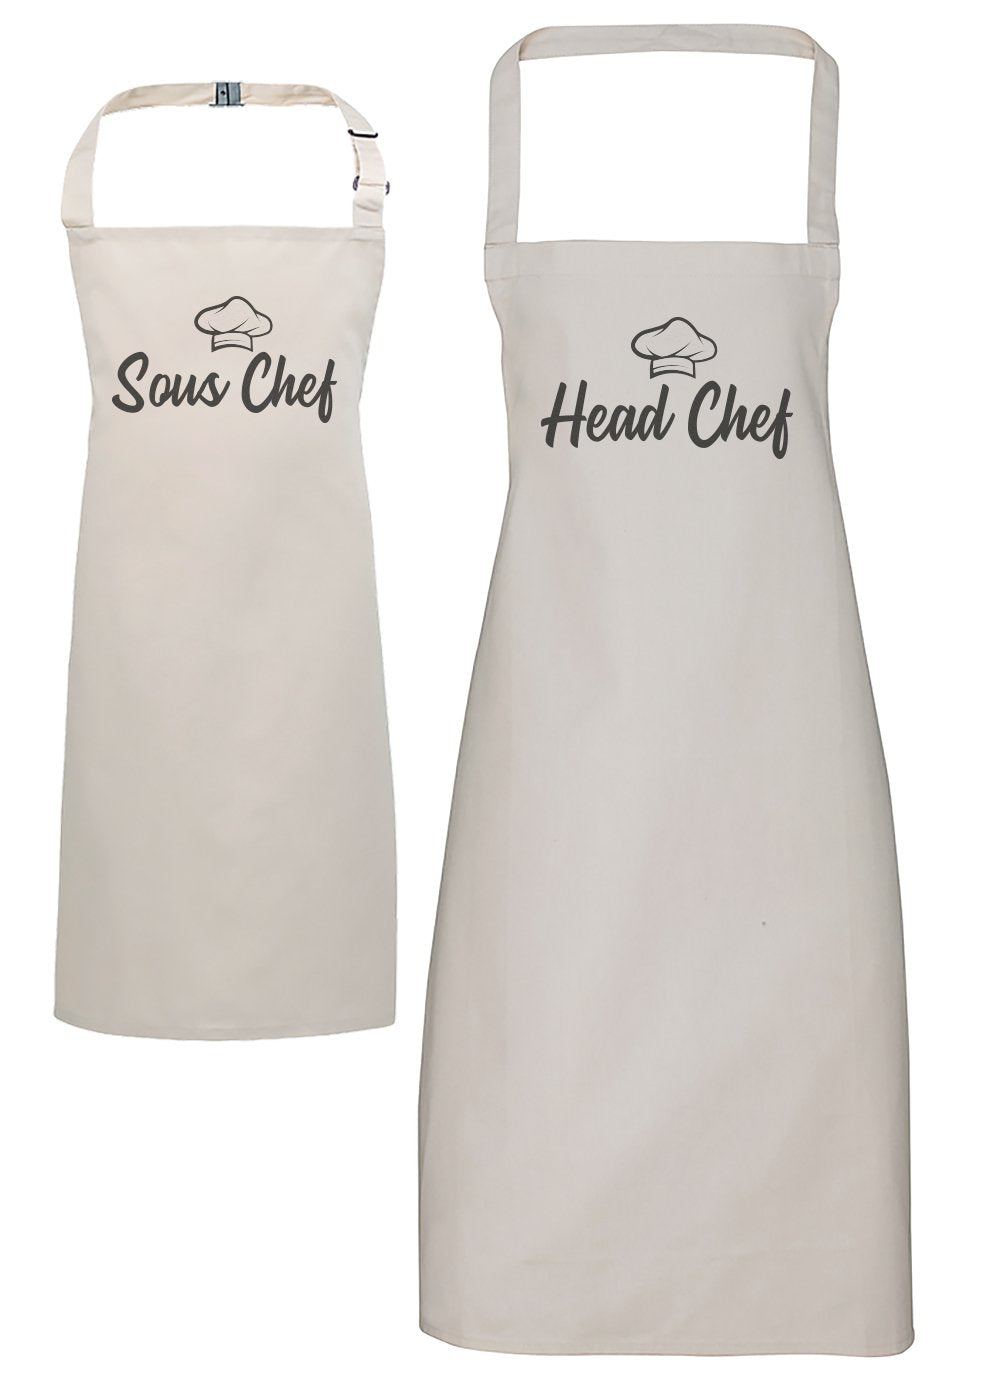 Head Chef & Sous Chef - Adult & Kids Apron Set